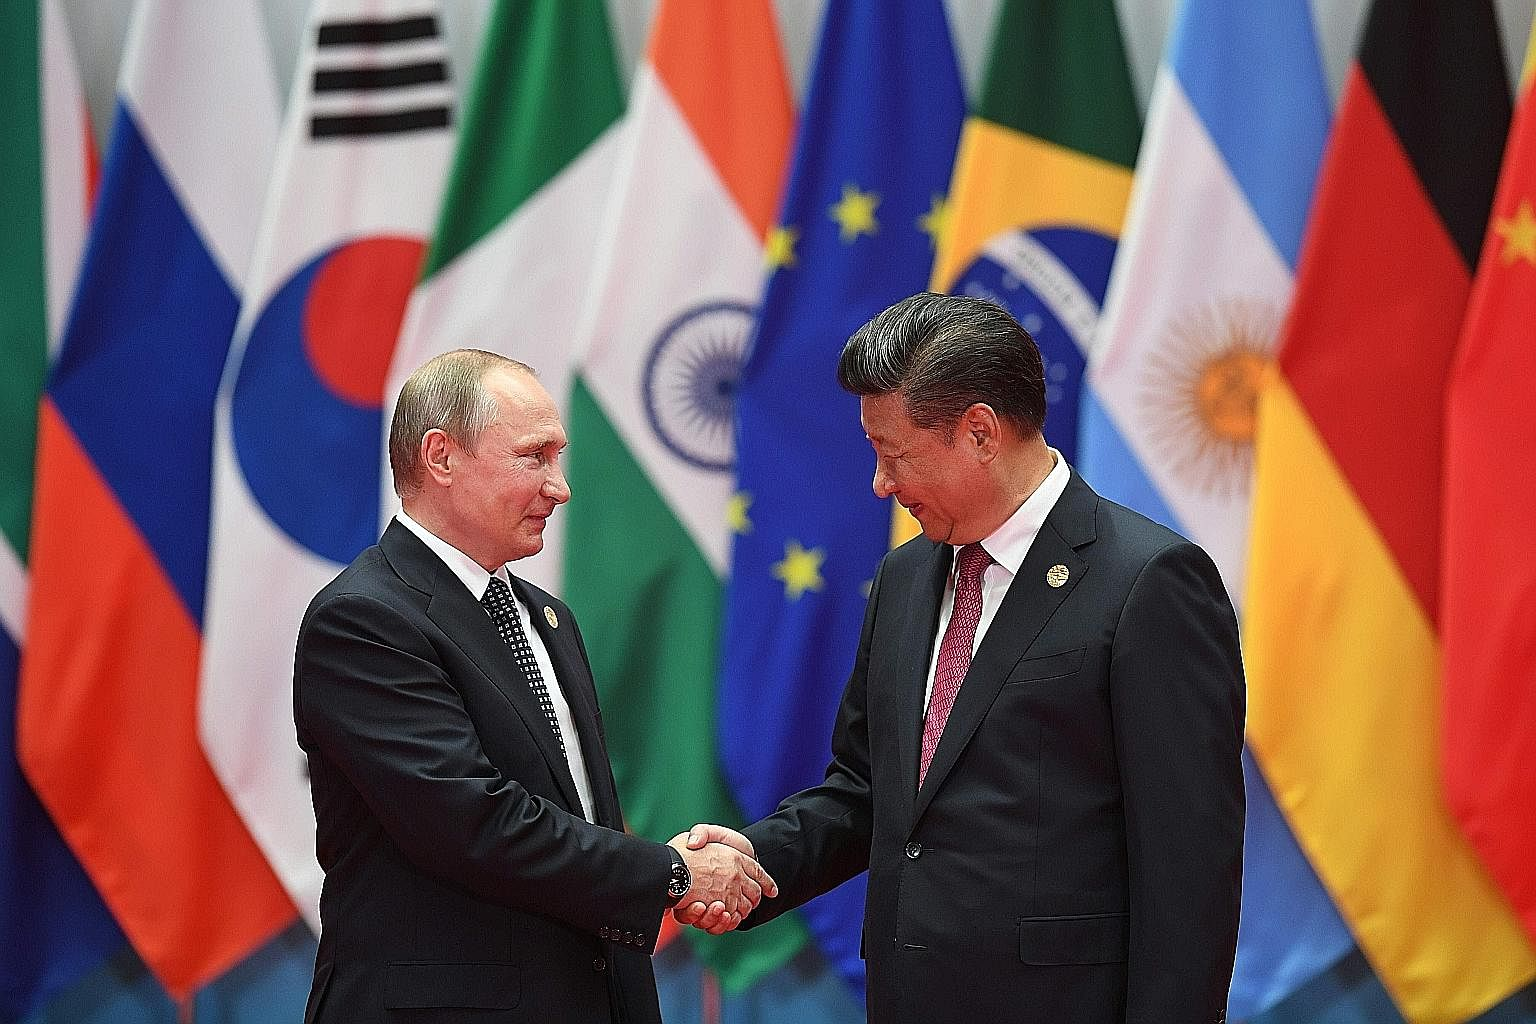 Russian President Vladimir Putin meeting Chinese President Xi Jinping at the G-20 summit in Hangzhou earlier this month. As more unites Beijing and Moscow than divides them, both have agreed to tactically cooperate on a range of issues that touch on